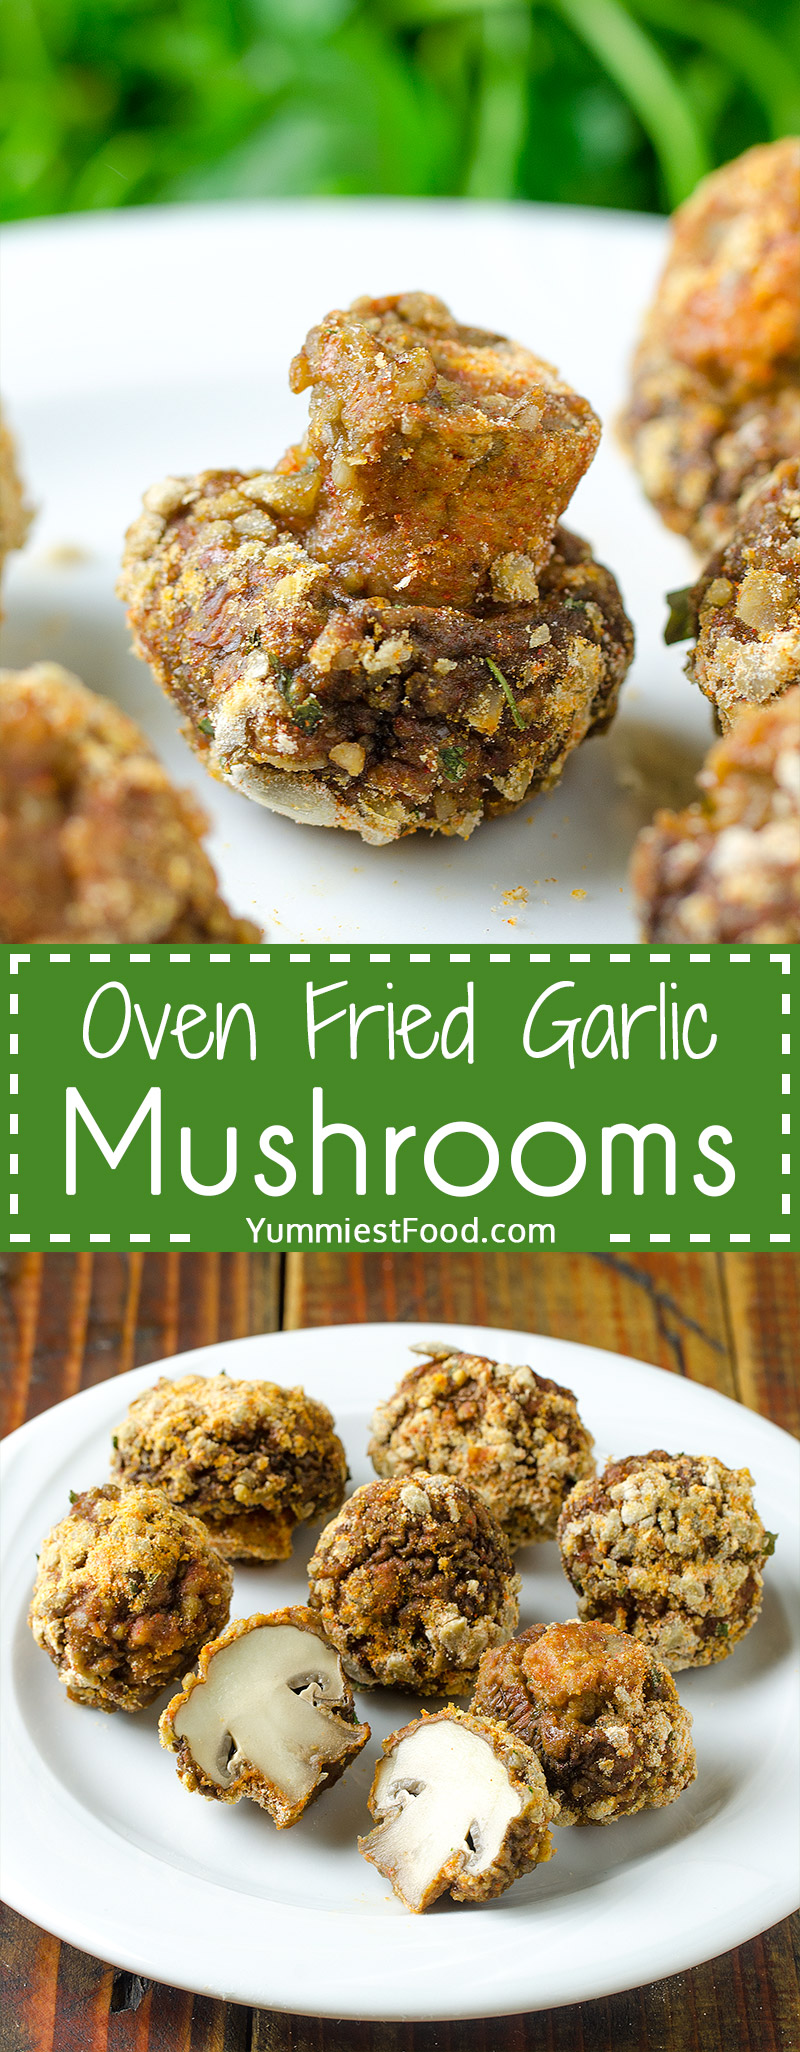 Delicious, easy and tender these Oven Fried Garlic Mushrooms are a perfect healthy side dish that take under 25 minutes to make